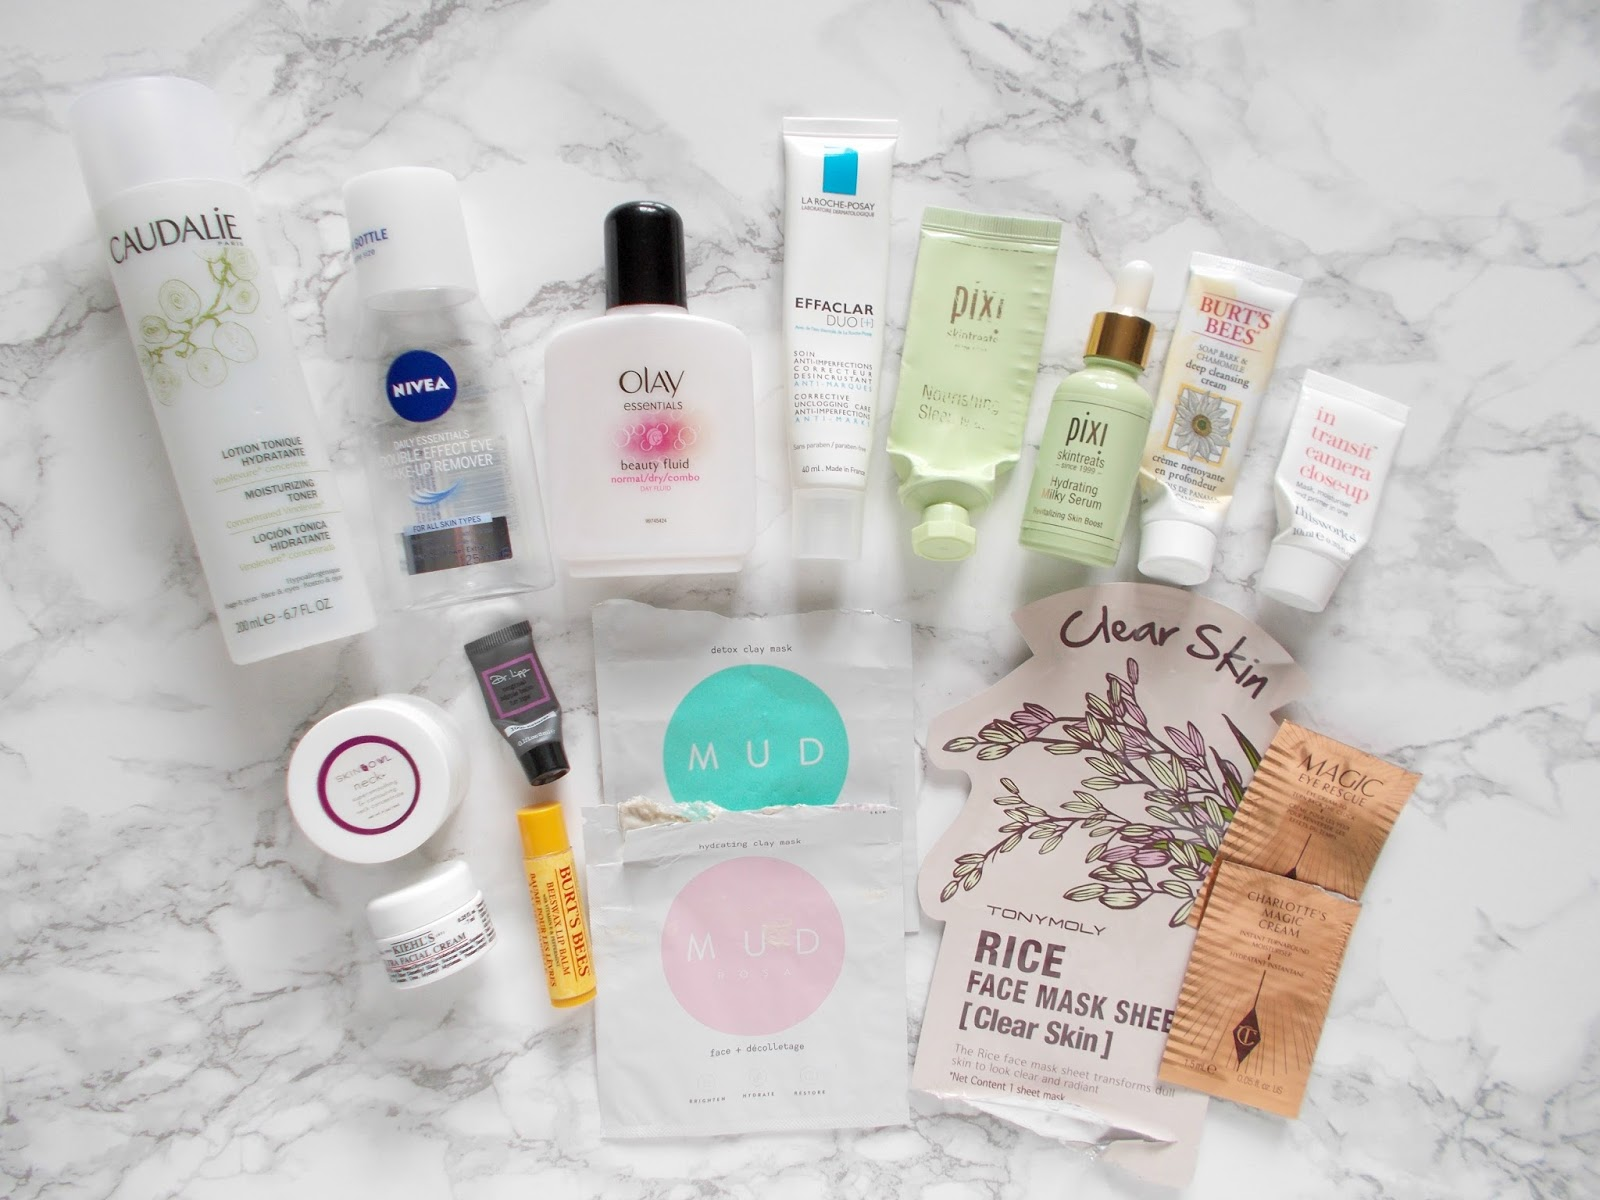 danielles beauty blog skincare empties